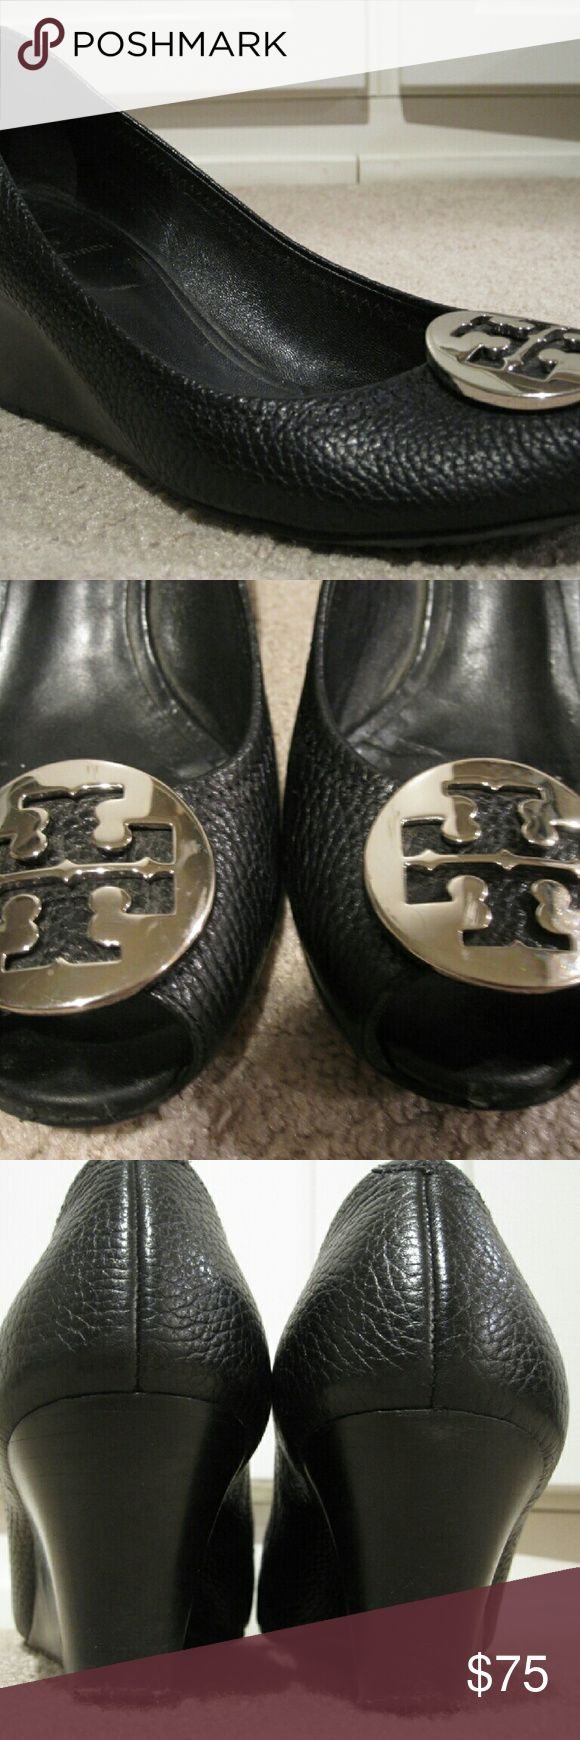 """Tory Burch Sally 2 Black Peep Toe Wedge Size 8 This is a pair of Tory Burch Sally 2 peep toe wedge heels in size 8. They are made of black pebbled leather and have a gleaming silver emblem on the front. They have a 2.5"""" heel making them great for work. These have been worn and show signs of wear on the soles. The heels are going to need new tips and the insoles are starting to come up slightly on the front. However these are great quality and have a lot of life remaining in them. Tory Burch…"""